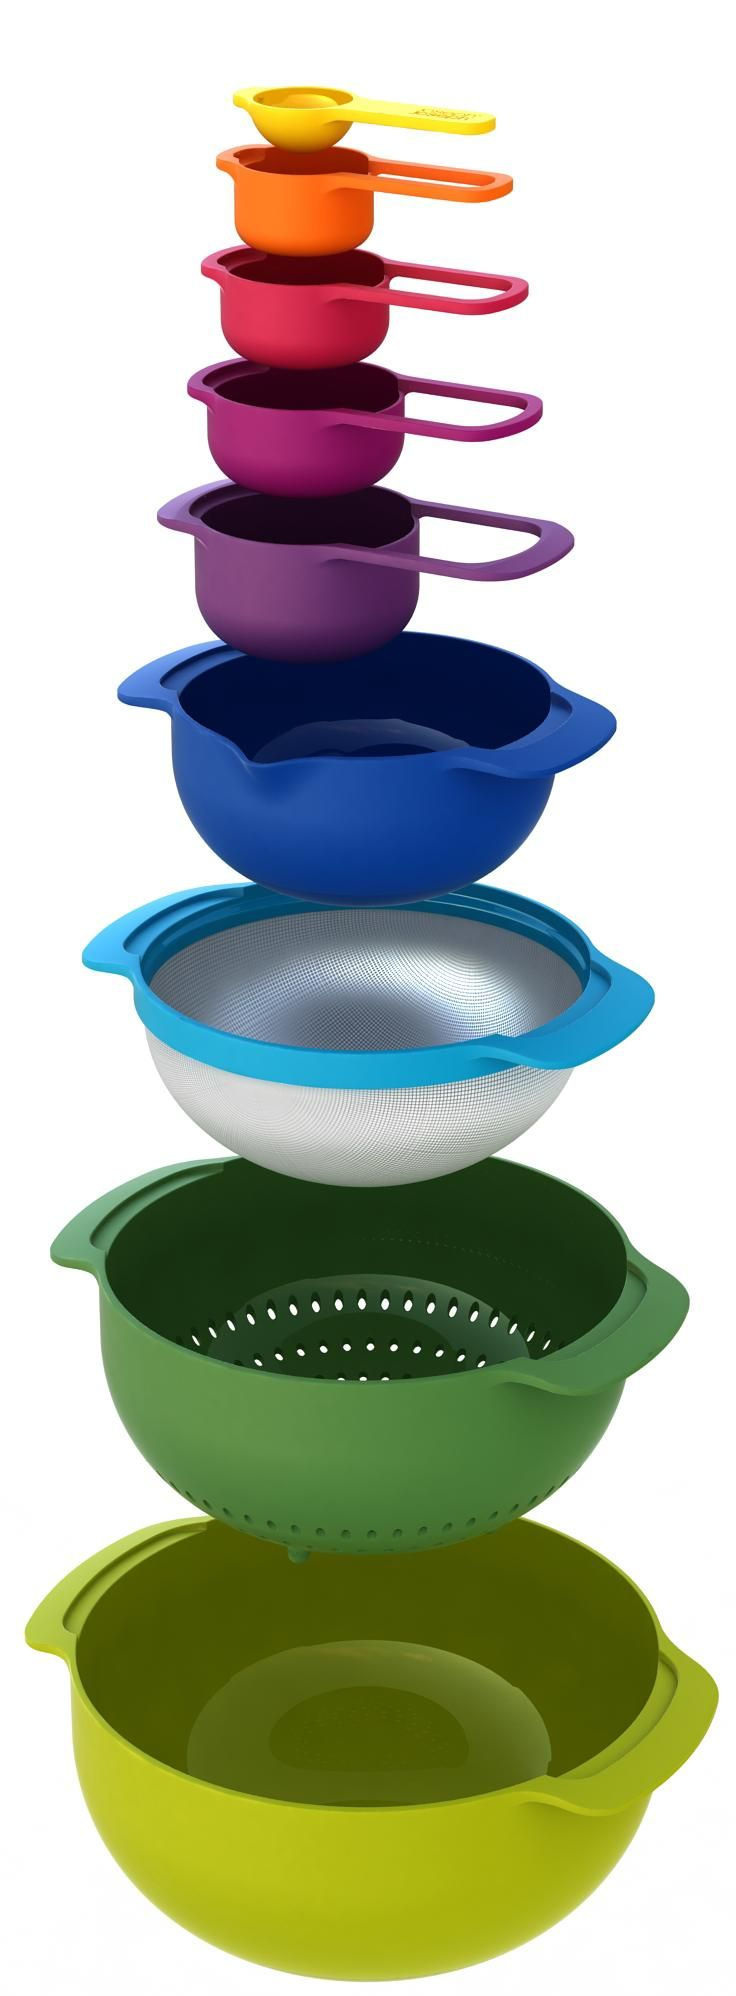 Joseph Joseph's Nest™ line is the ultimate collection of practical, space-saving kitchenware comprising a unique range of food preparation sets.  The Nest™ 9 includes:     5 x measuring cups  1 x small non-slip mixing bowl with measurements  1 x stainless-steel mesh sieve  1 x colander/strainer  1 x large non-slip mixing bowl